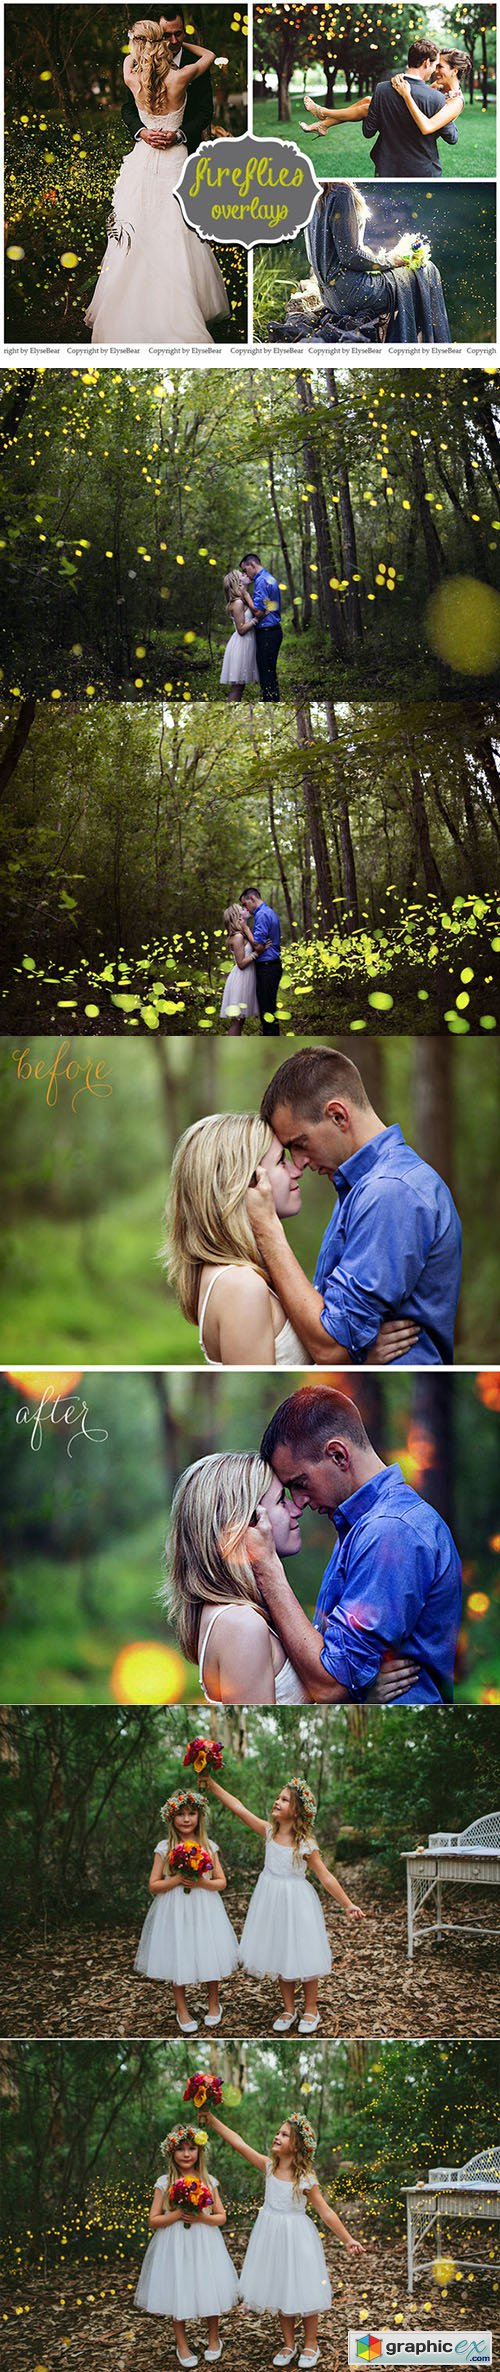 20 Fireflies Photo Overlays